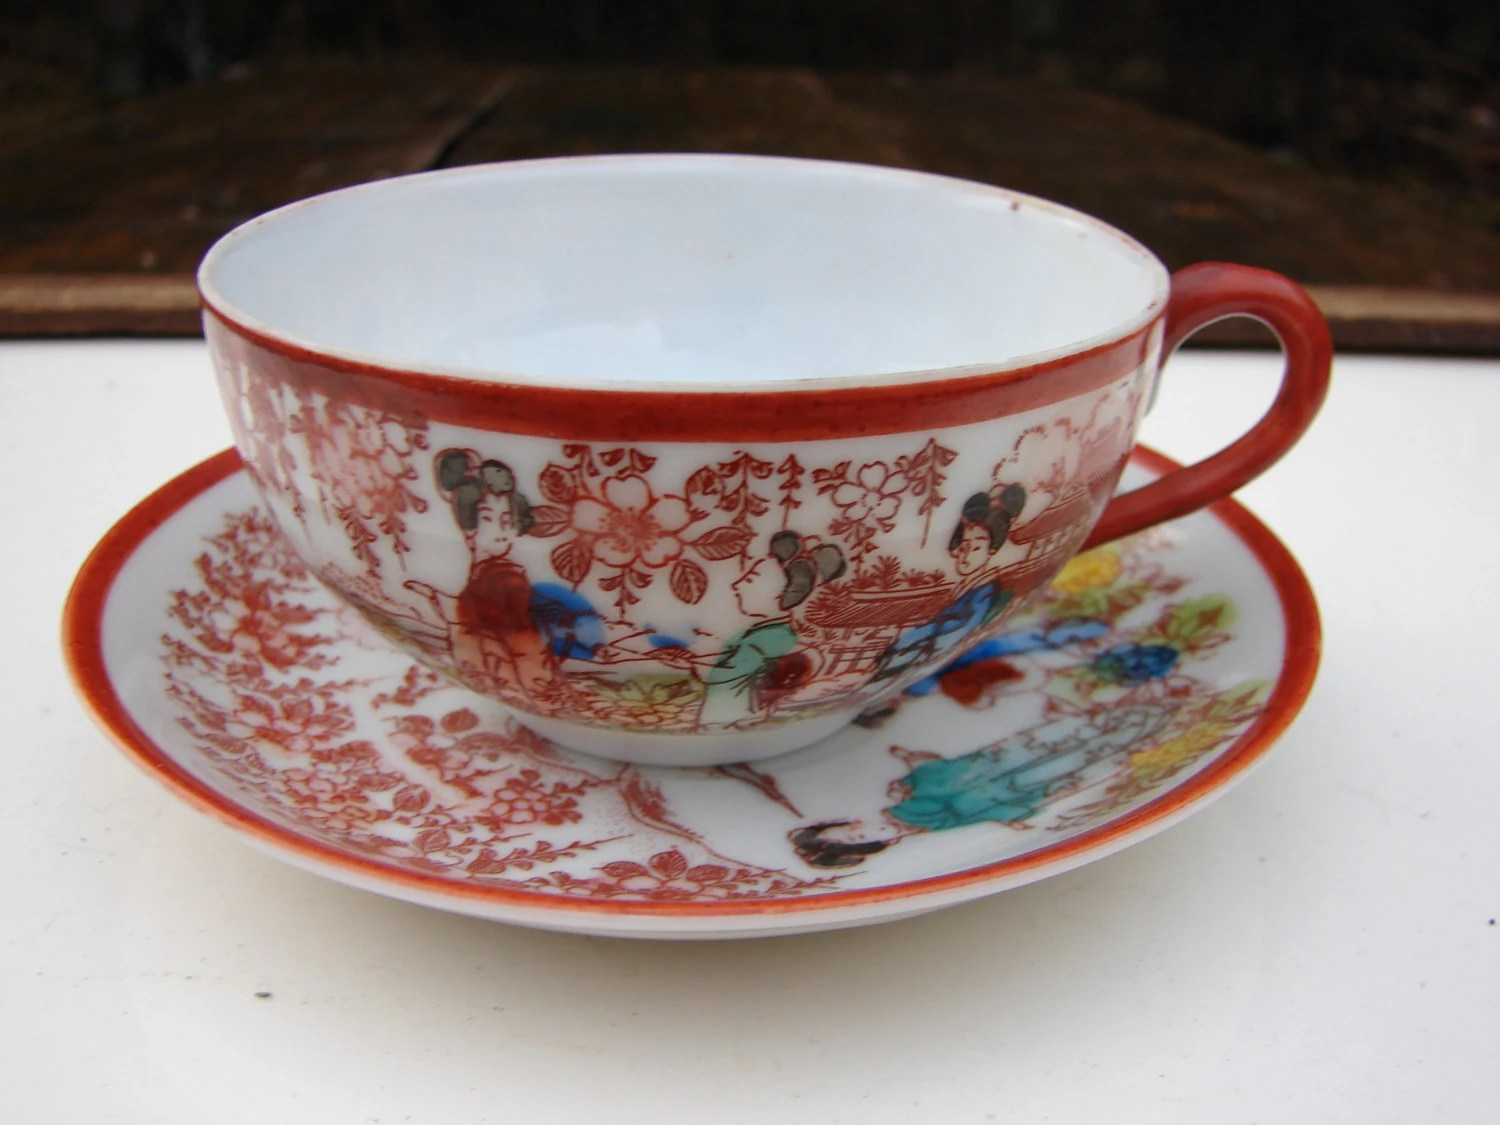 Vintage Japanese Tea Cup Shop Collectibles Online Daily